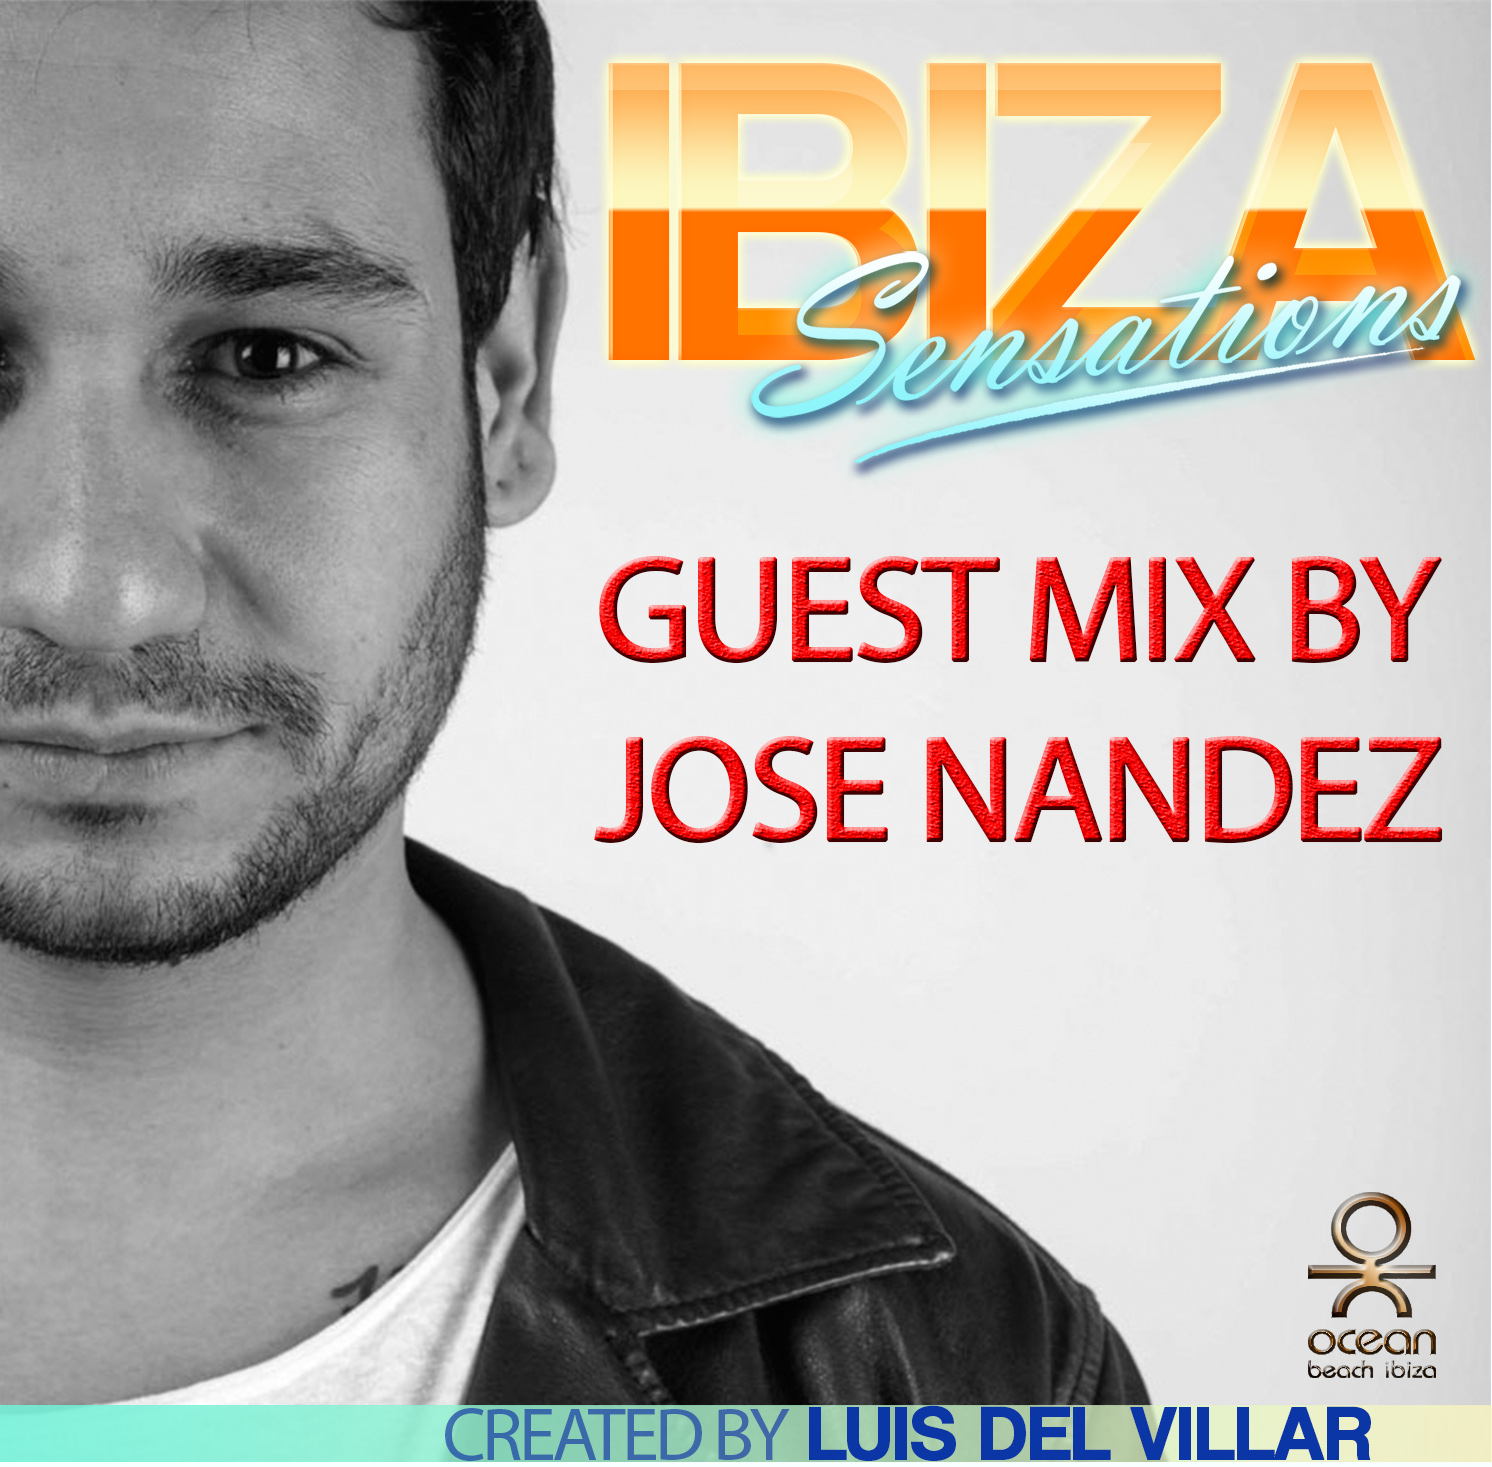 Artwork for Ibiza Sensations 110 Guest mix by Jose Nandez